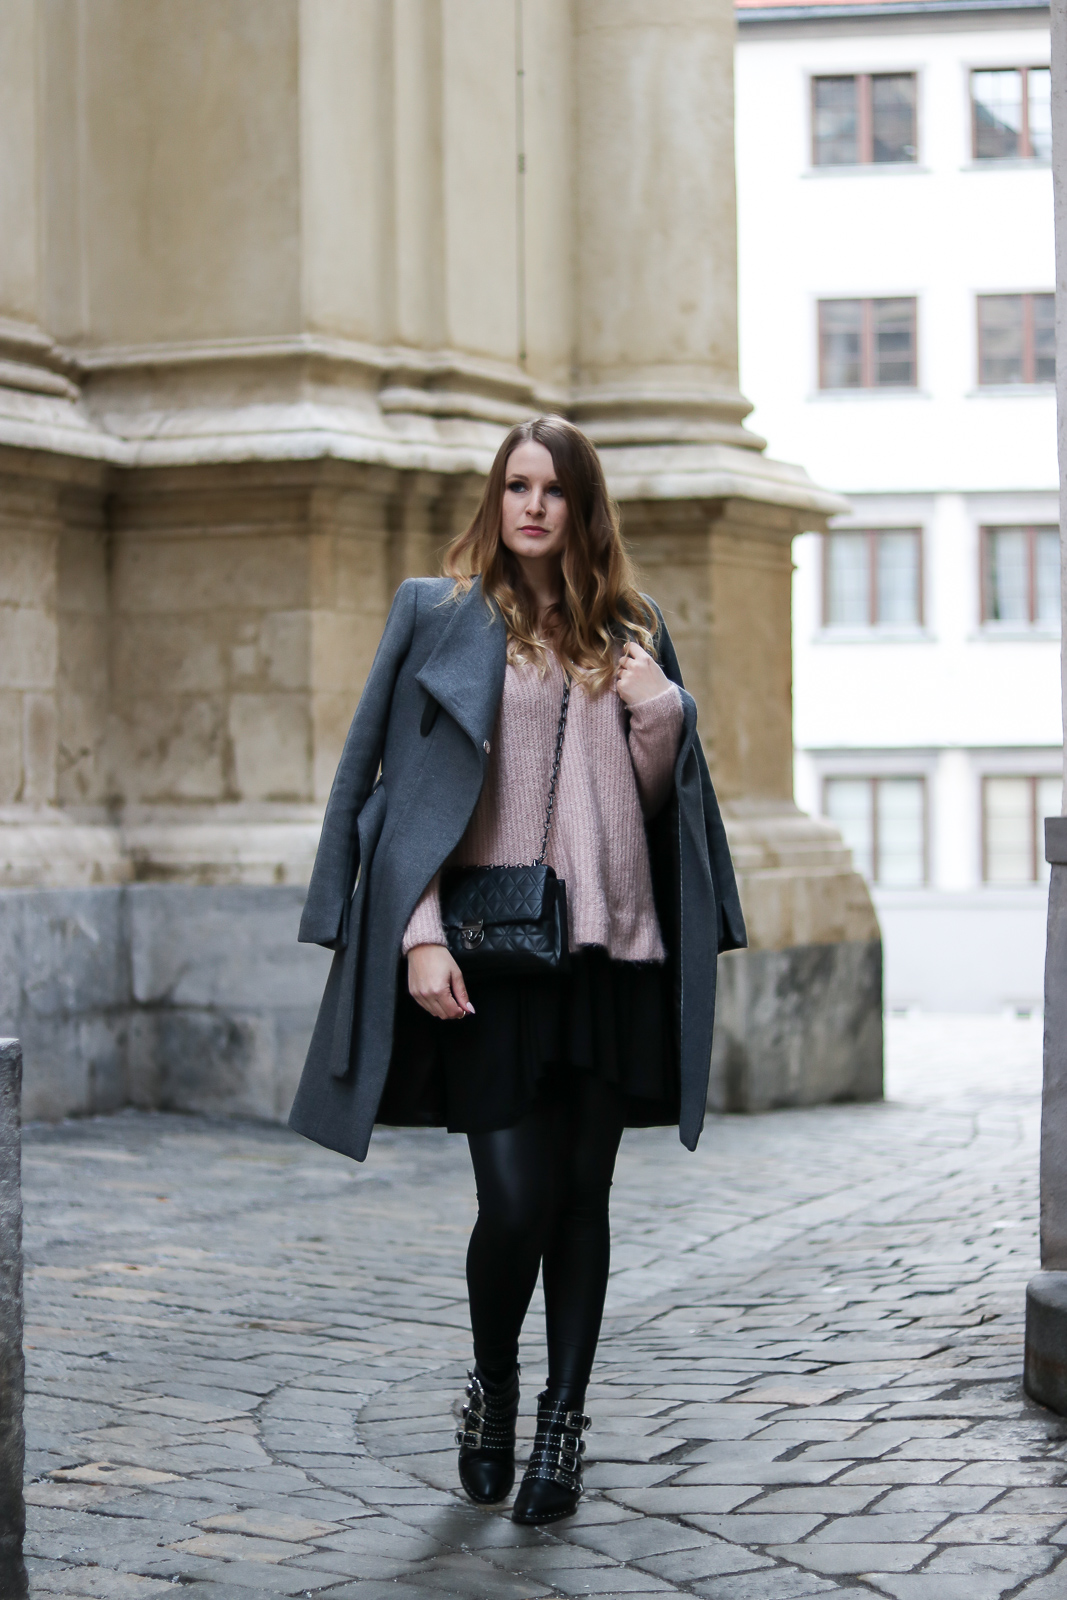 Layering Look - warm und stylish durch den Winter - Lagenlook kombinieren - grauen Mantel kombinieren - grauer Mantel kombination - Lederleggings - Kleid und Pullover - Rosa Grau Kombination - Lederleggings kombinieren - Outfit Ideen - Outfits - Mode Blog - Fashion Blog - Bloggerin aus Österreich - Style Magazin - Fashionladyloves by Tamara Wagner